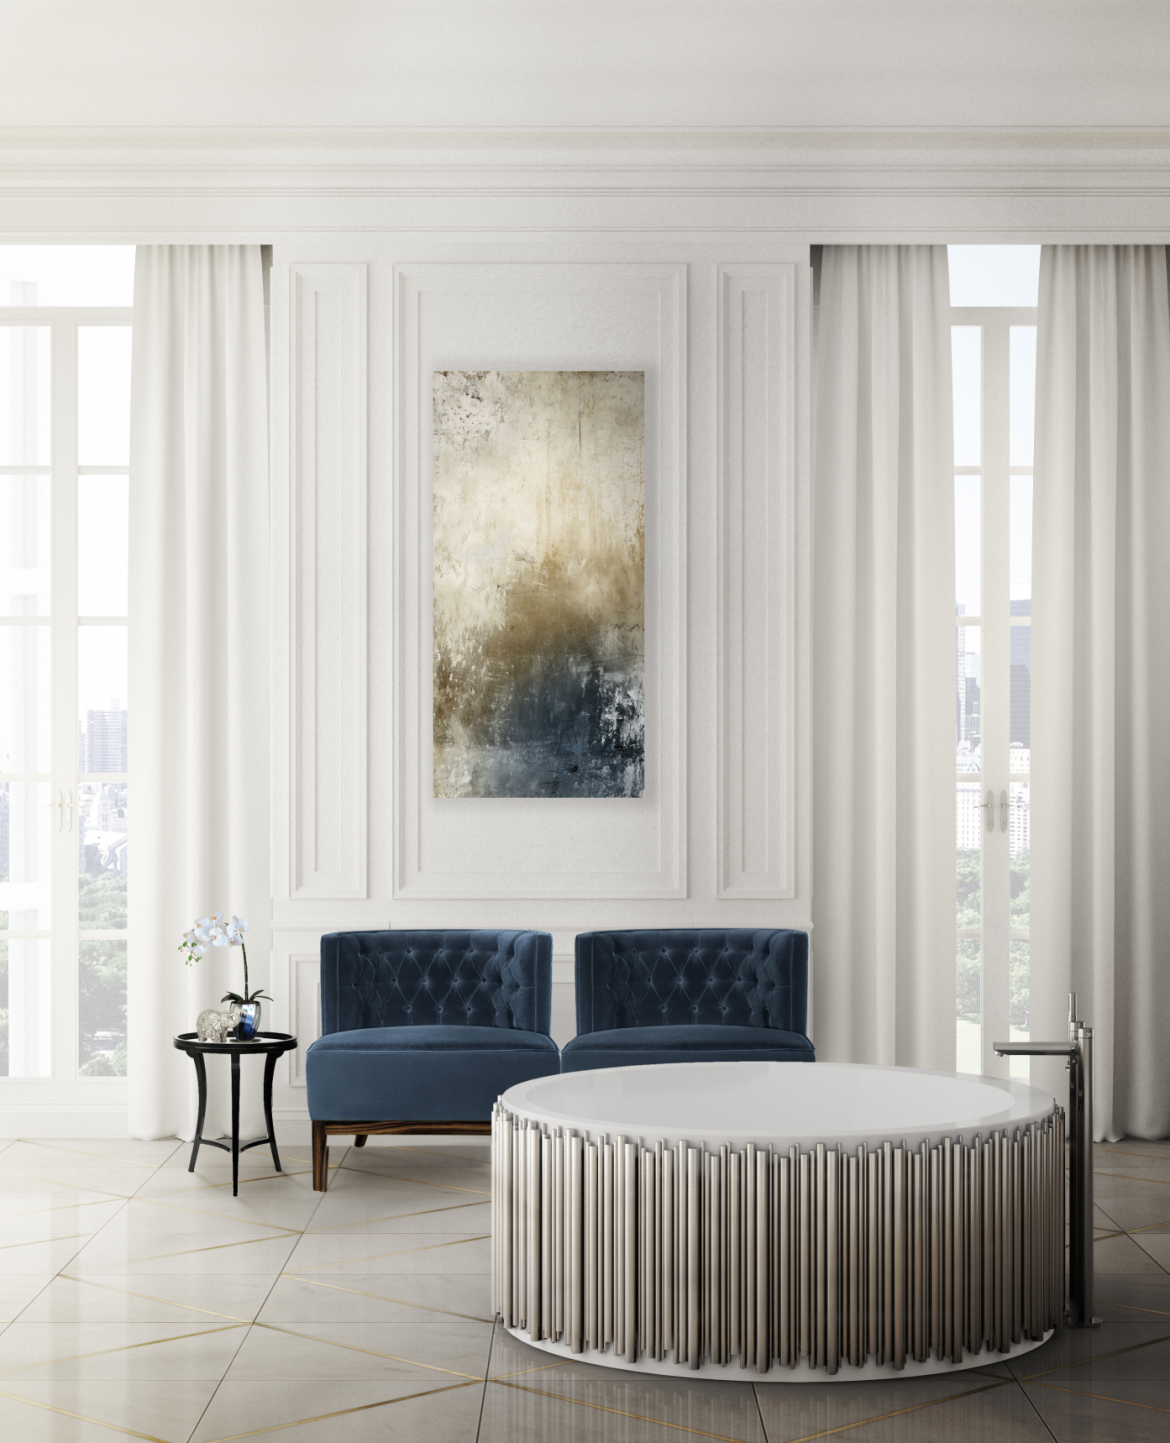 2020 Spring Interior Design Trends: Colors, Textures and Patterns 1 2020 spring 2020 Spring Interior Design Trends: Colors, Textures and Patterns bourbon mais banheira ambiente